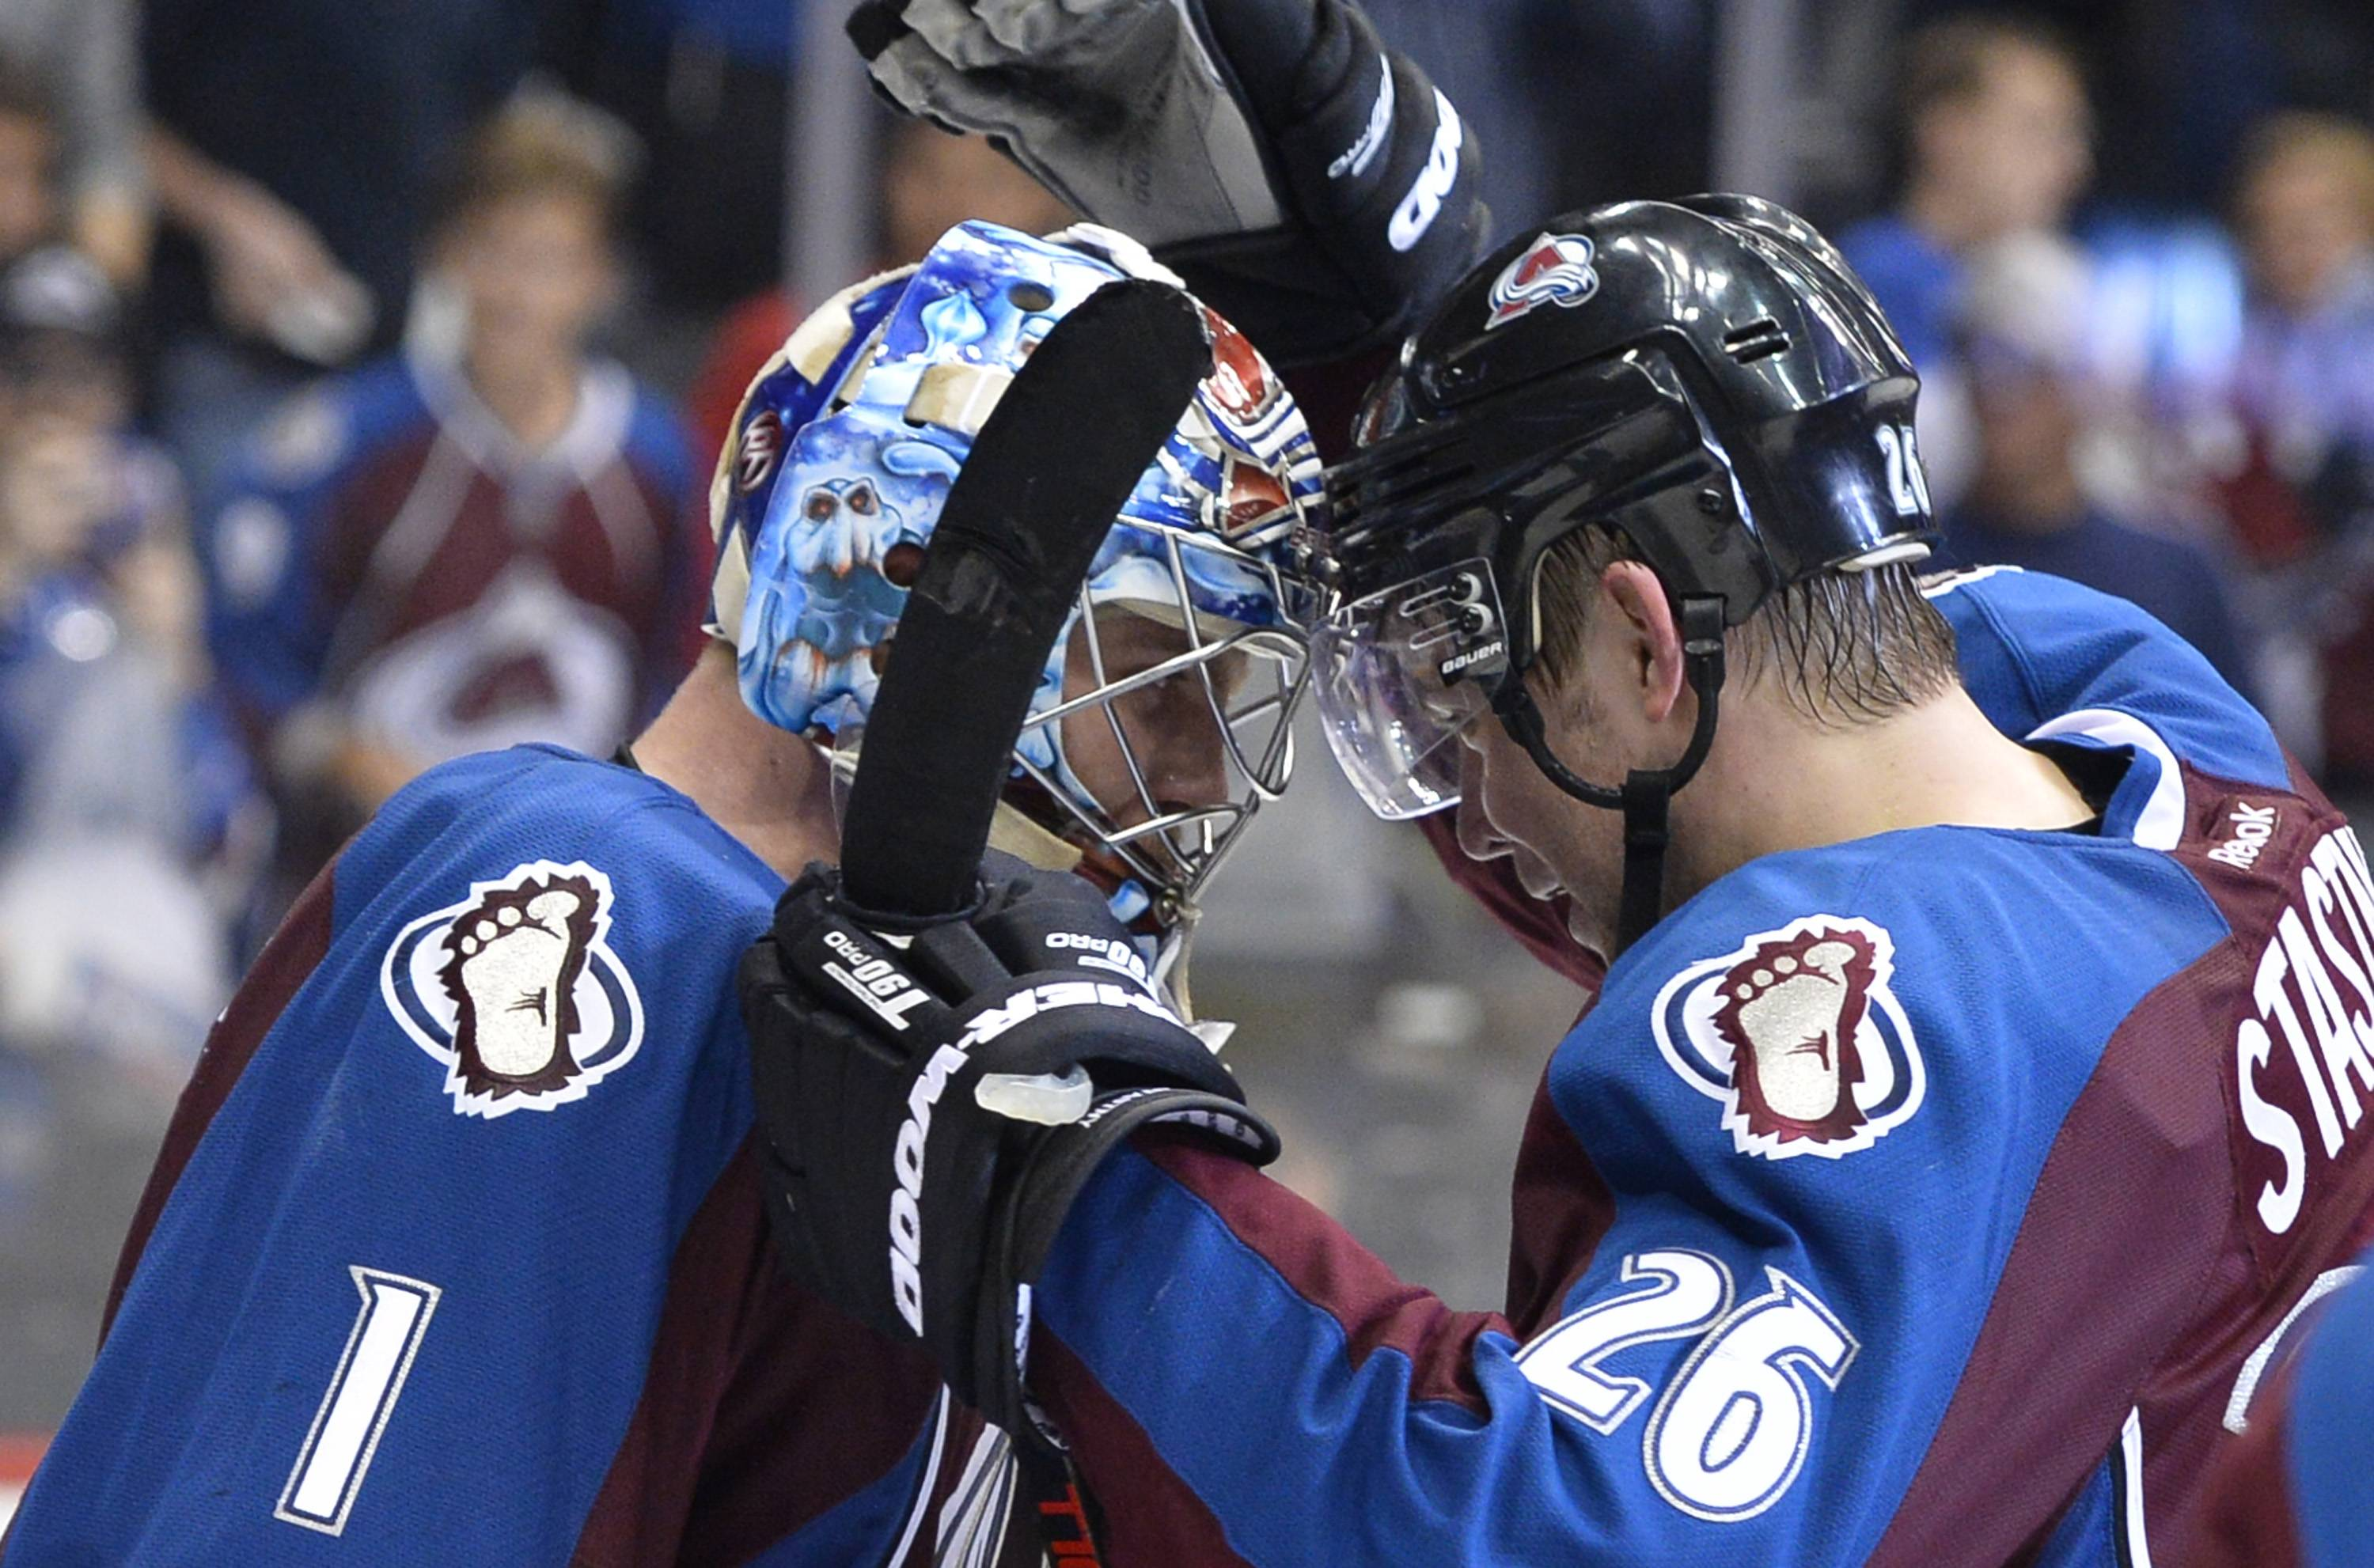 Colorado Avalanche goalie Semyon Varlamov (1) is congratulated by Paul Stastny (26) following the team's 4-2 win over the Minnesota Wild in Game 2 of an NHL hockey first-round playoff series Saturday in Denver. The Avalanche beat the Wild 4-2.